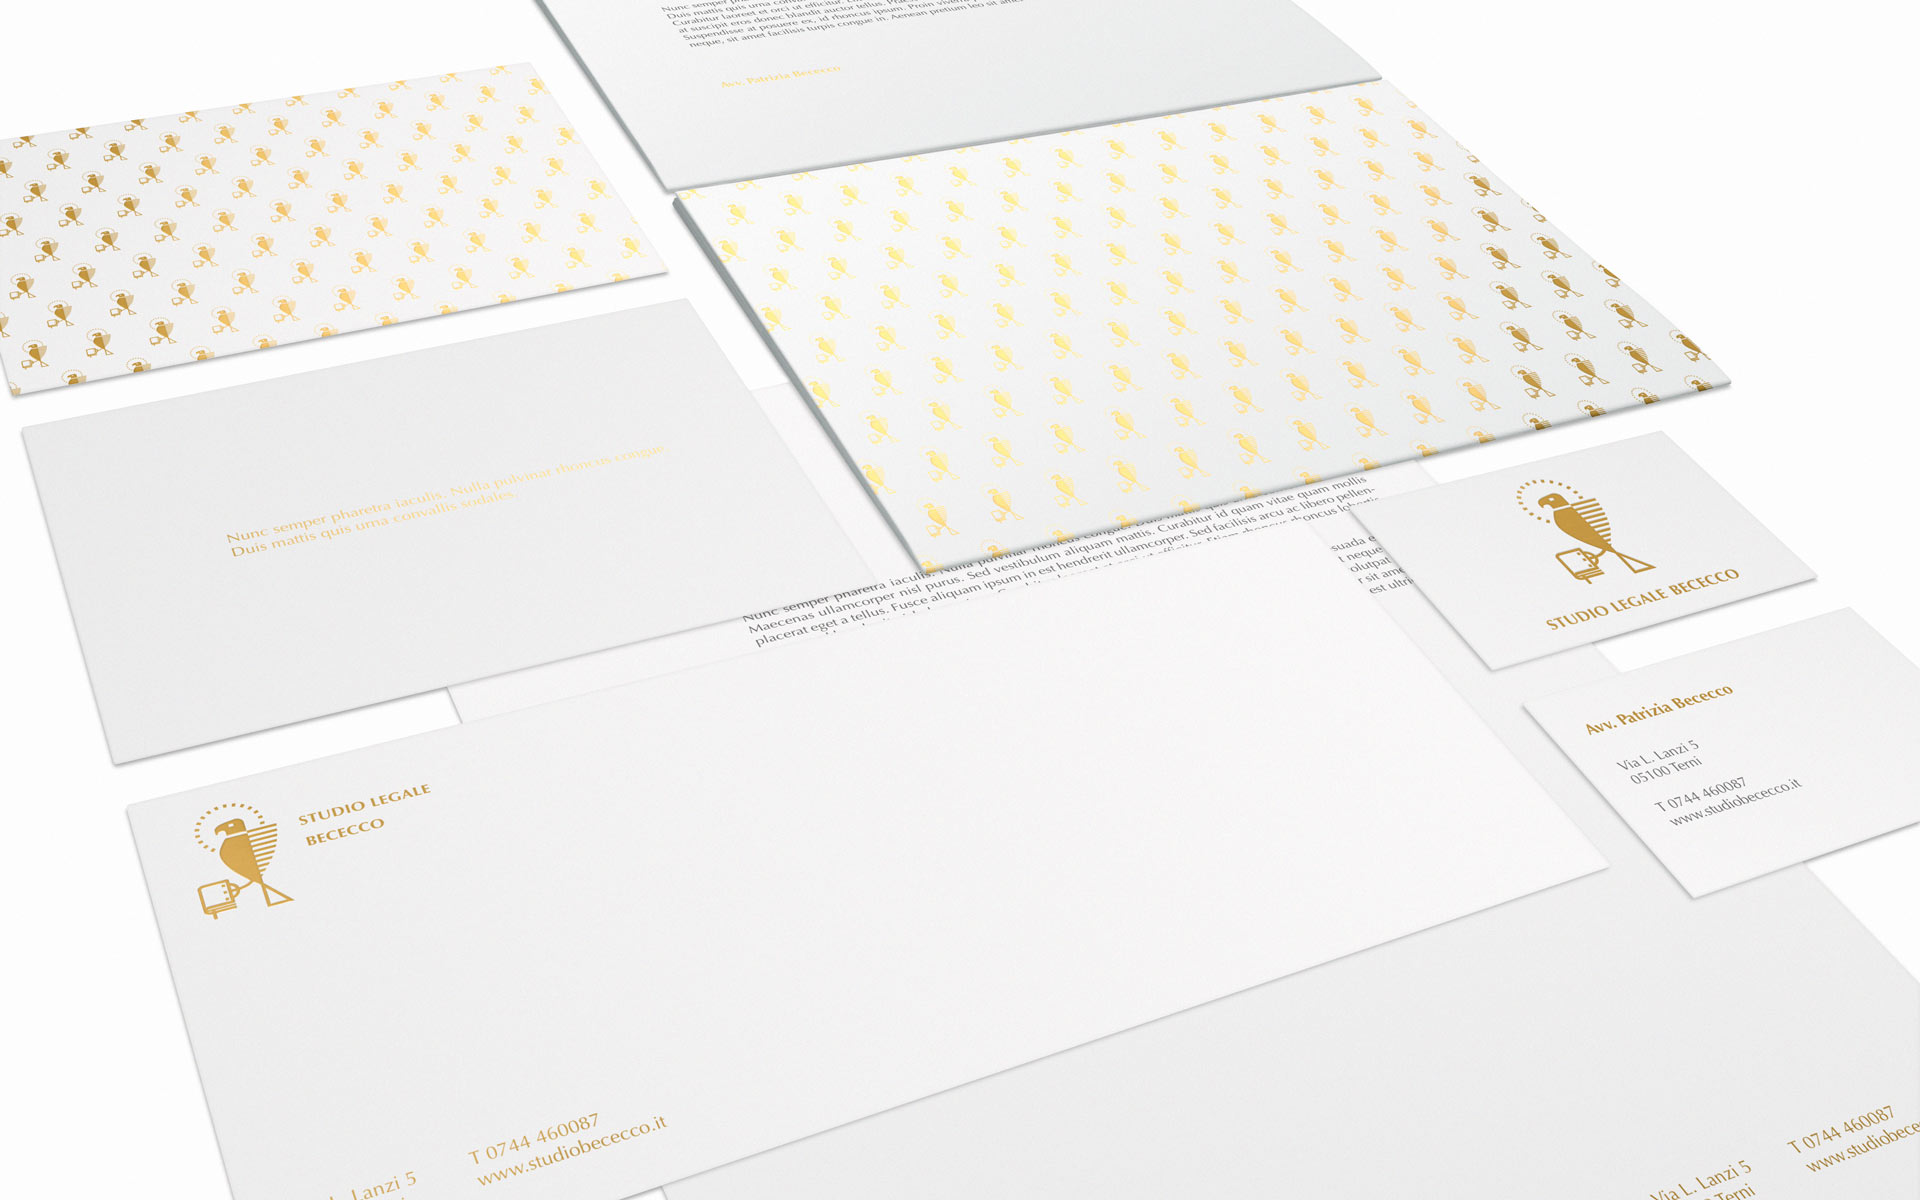 Studio Bececco stationery